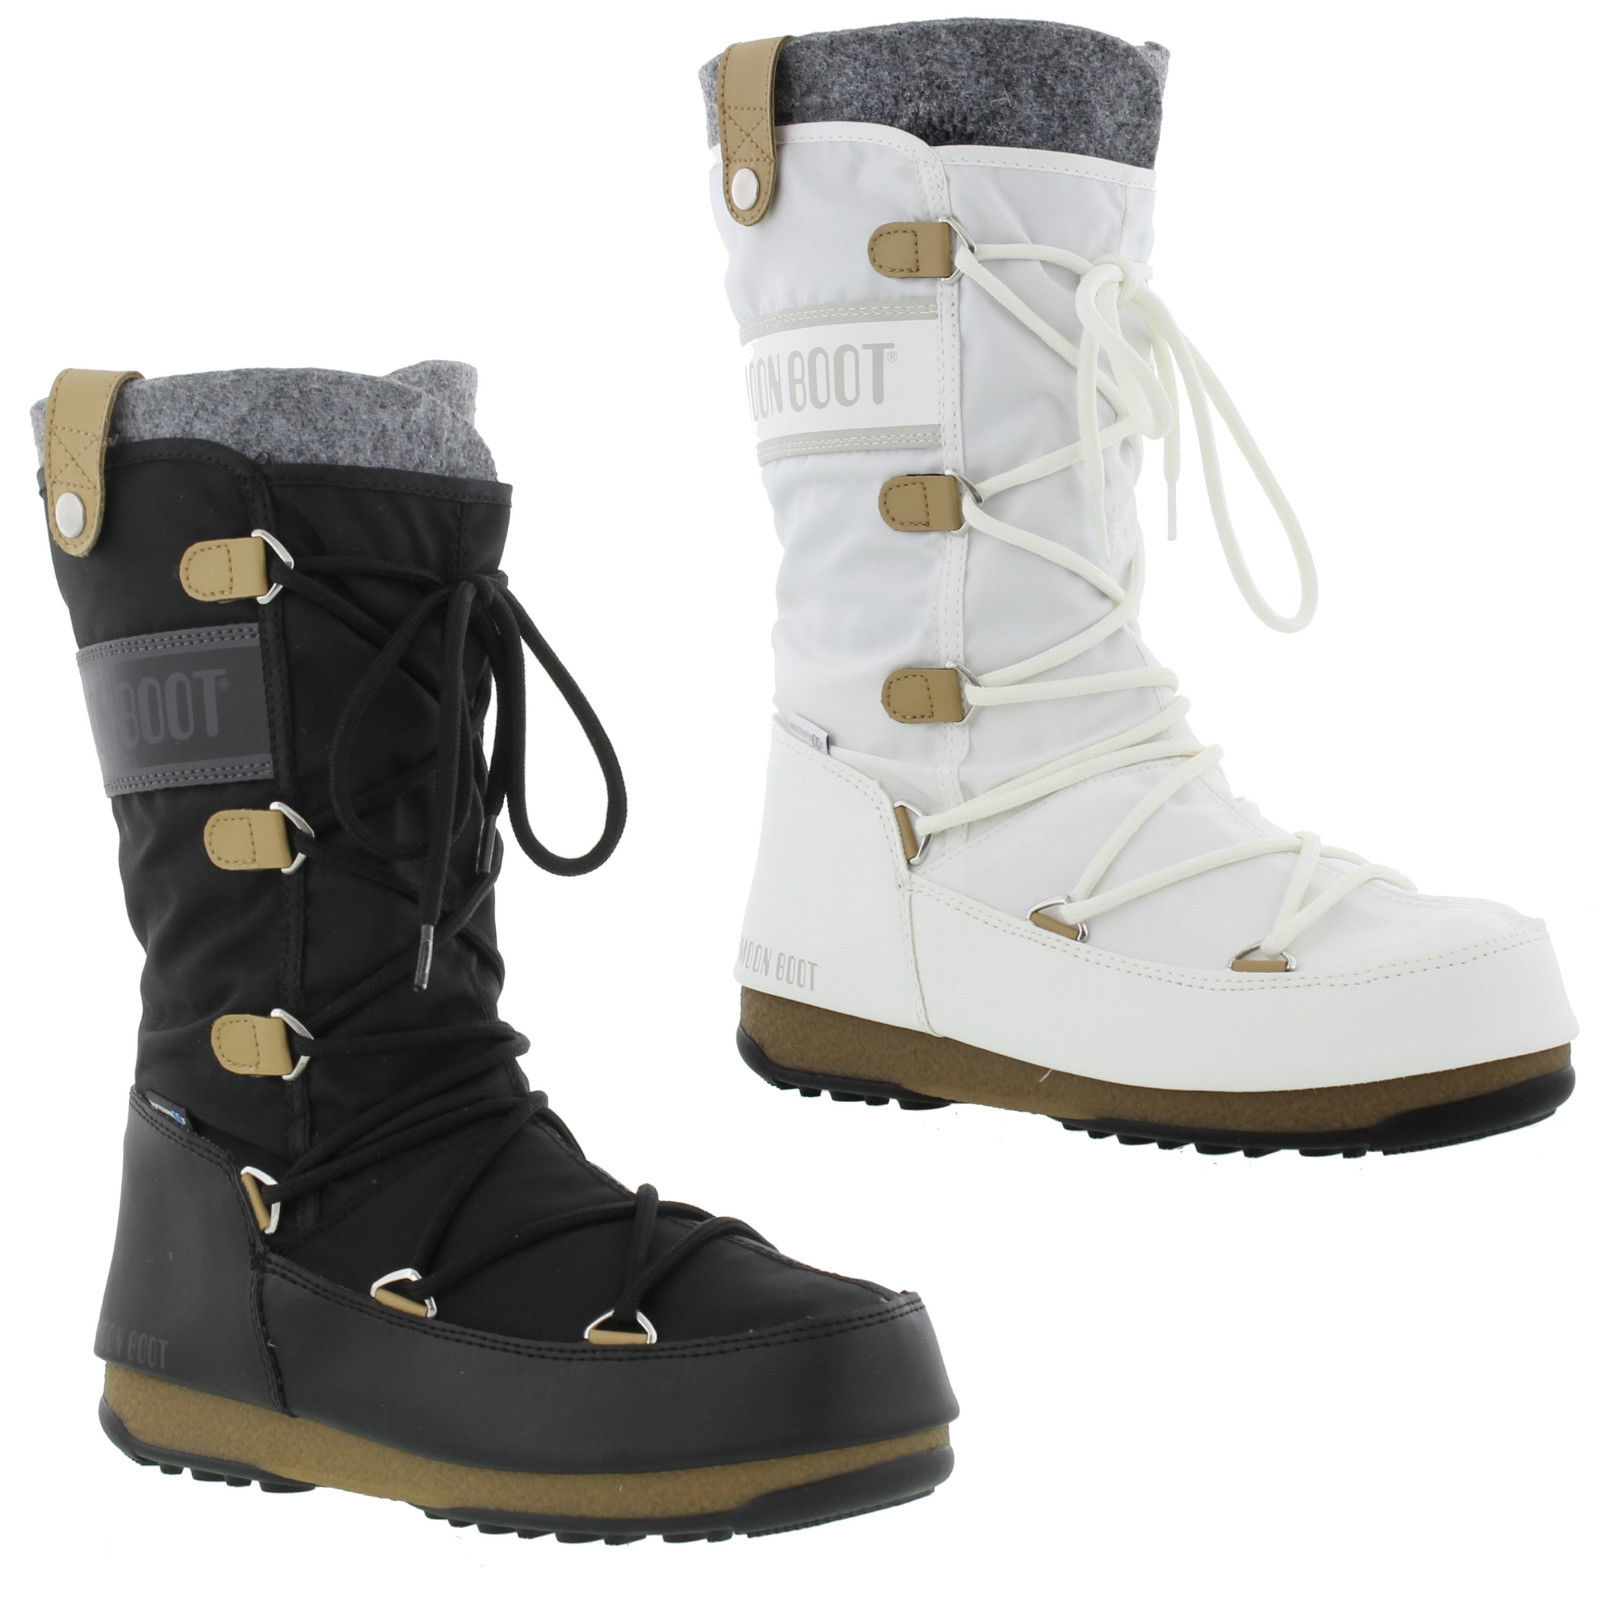 c74519824b1910 Details zu Moon Boots Monaco Felt Womens Black White Waterproof Ski Snow  Winter Size 4-7.5